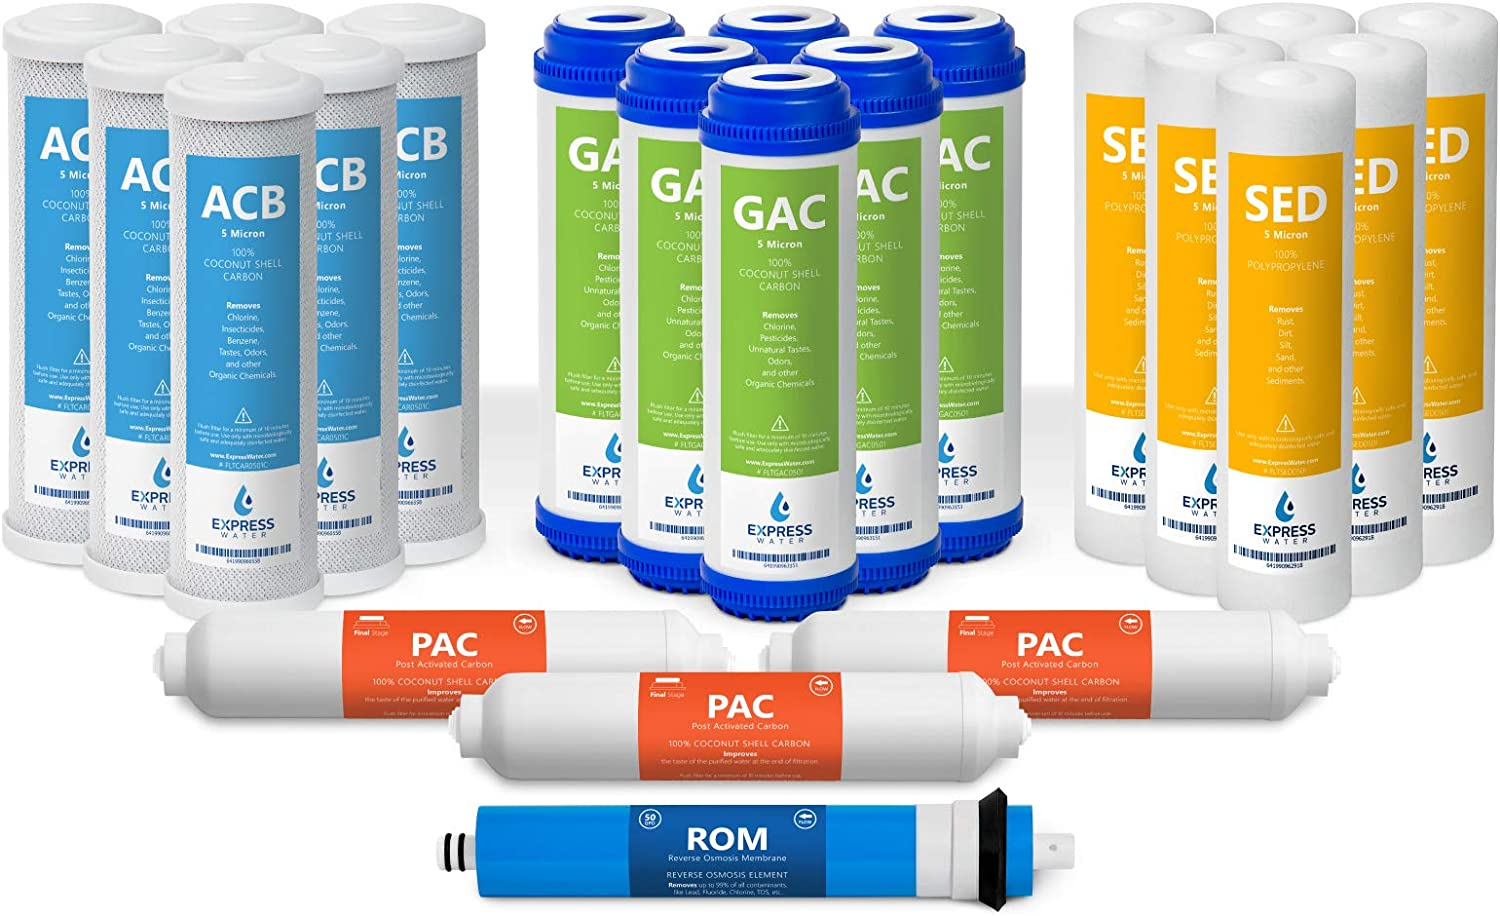 2 Year Reverse Osmosis System Filter Set Alkaline Sediment SED 22 Filters with 100 GPD RO Membrane Carbon GAC ACB PAC Express Water and UV Filters 10 inch Size Replacement Water Filters